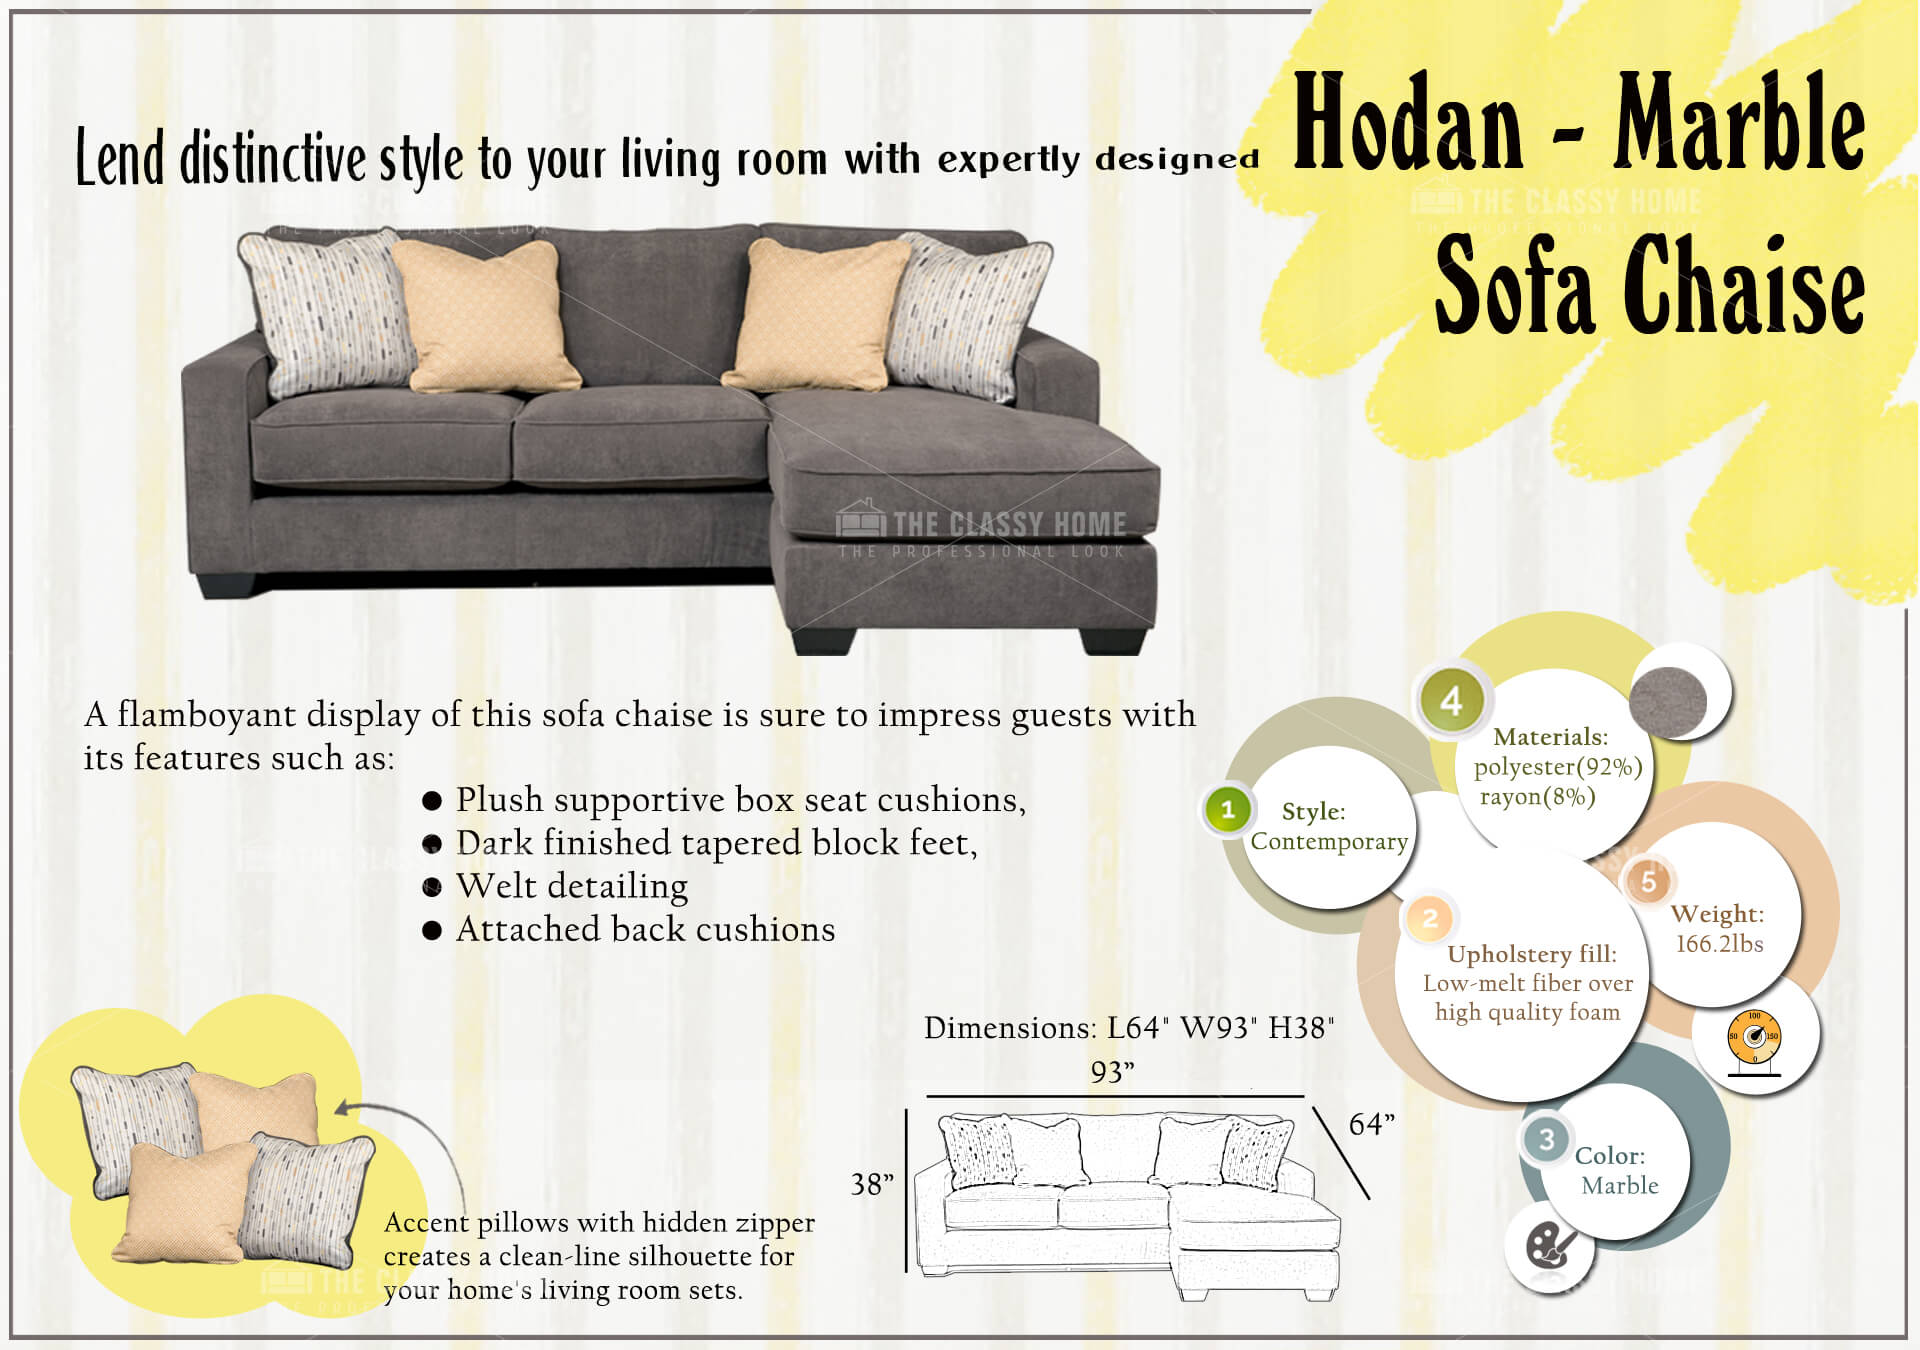 Ashley Furniture Hodan Sofa Chaise The Classy Home